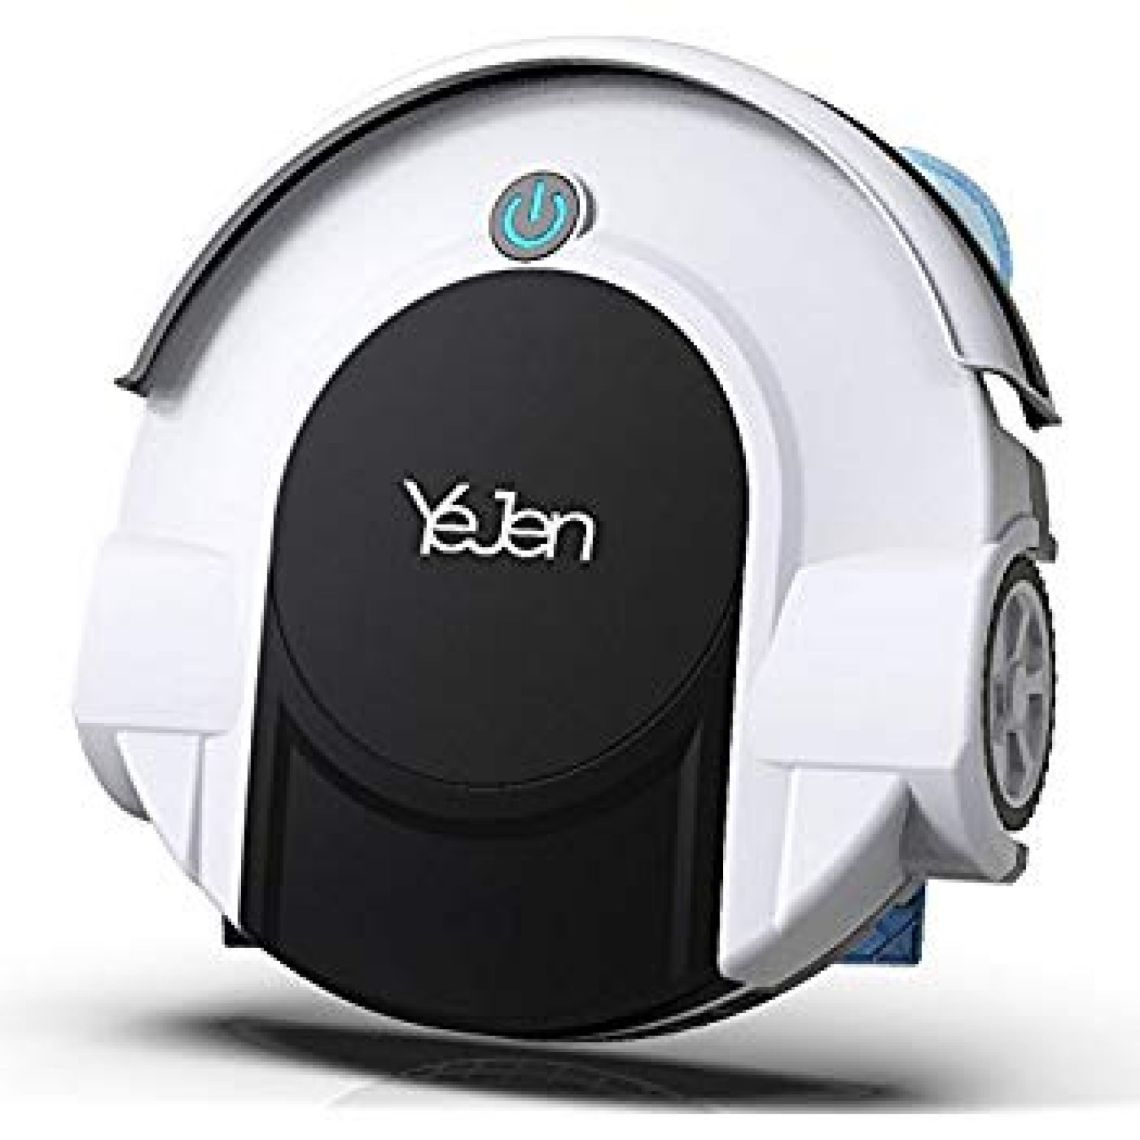 Amazon.com - YEJEN Robotic Cleaner with Drop-Sensing Technology, Vacuum and Sweeper for Hard Floor and Low-Pile Carpet, HEPA-Style Filter&Mopping Function - Cleaning Robot(Deluxe Edition) -